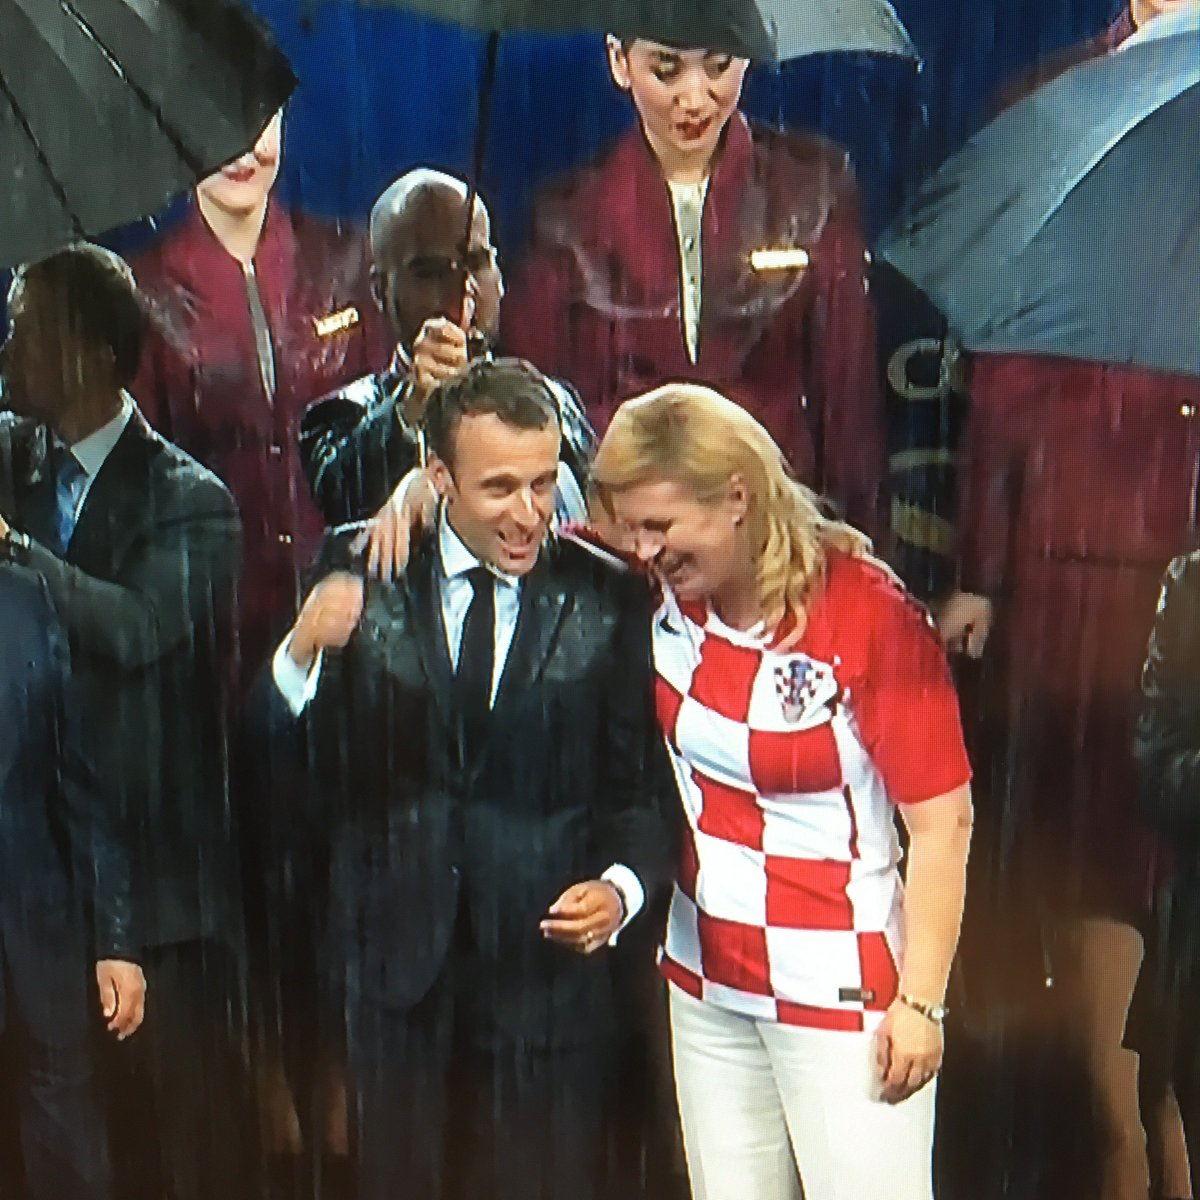 Mary Novakovich On Twitter Love This Emmanuel Macron And Kolinda Grabar Kitarovic Celebrating Their Respective Countries Football Teams In The Pouring Rain Crofra Worldcup Https T Co Kupkyb8qrr